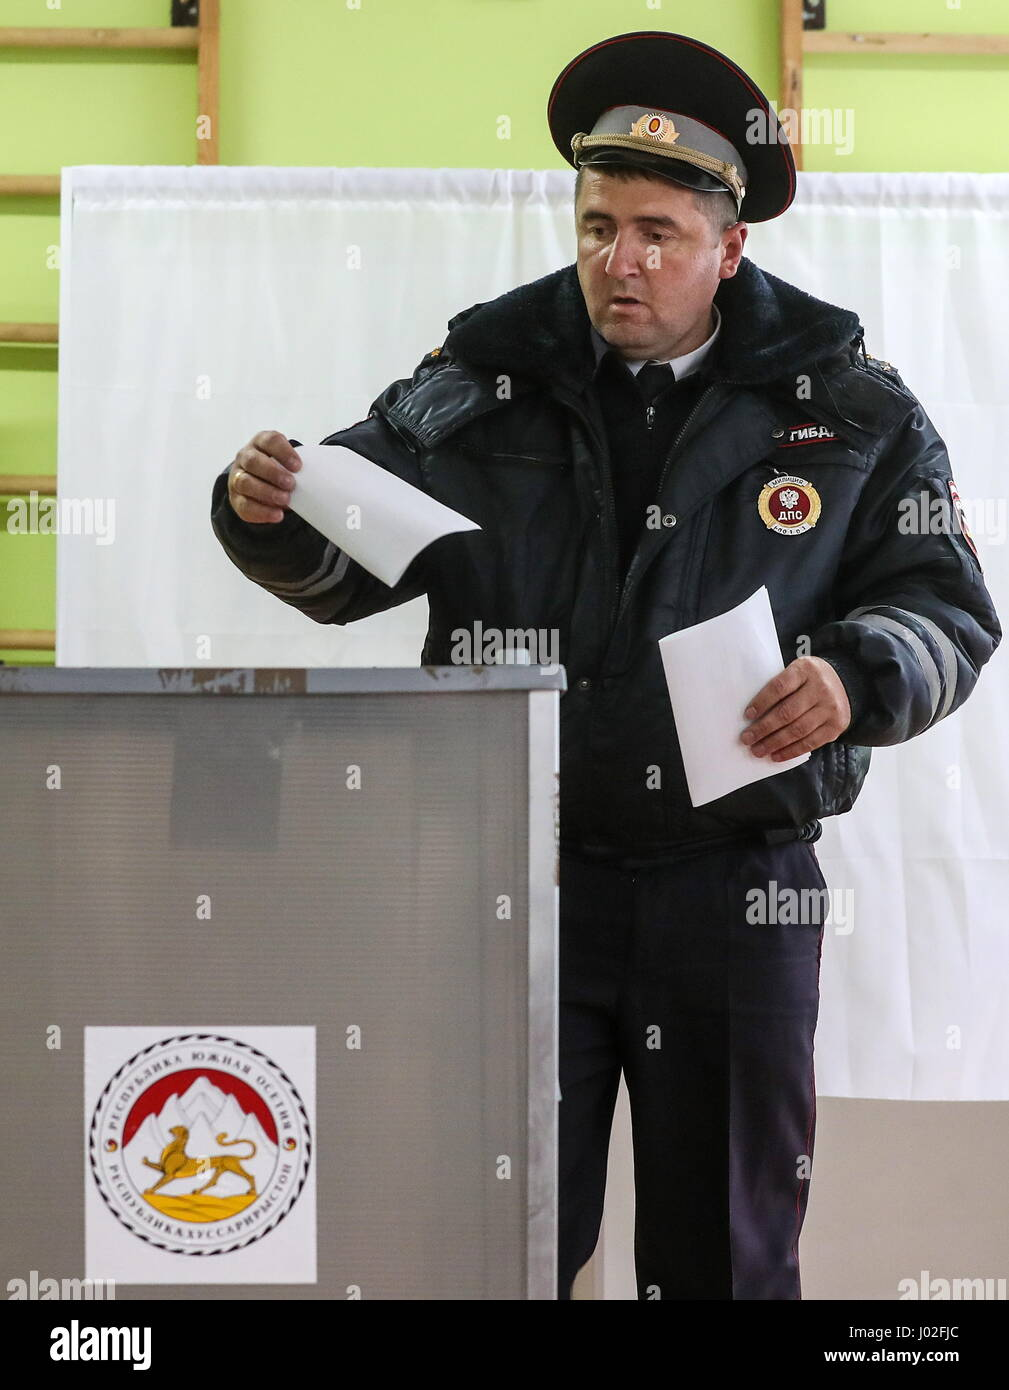 Tskhinval, South Ossetia. 9th Apr, 2017. A police officer votes at the 2017 South Ossetian presidential election - Stock Image